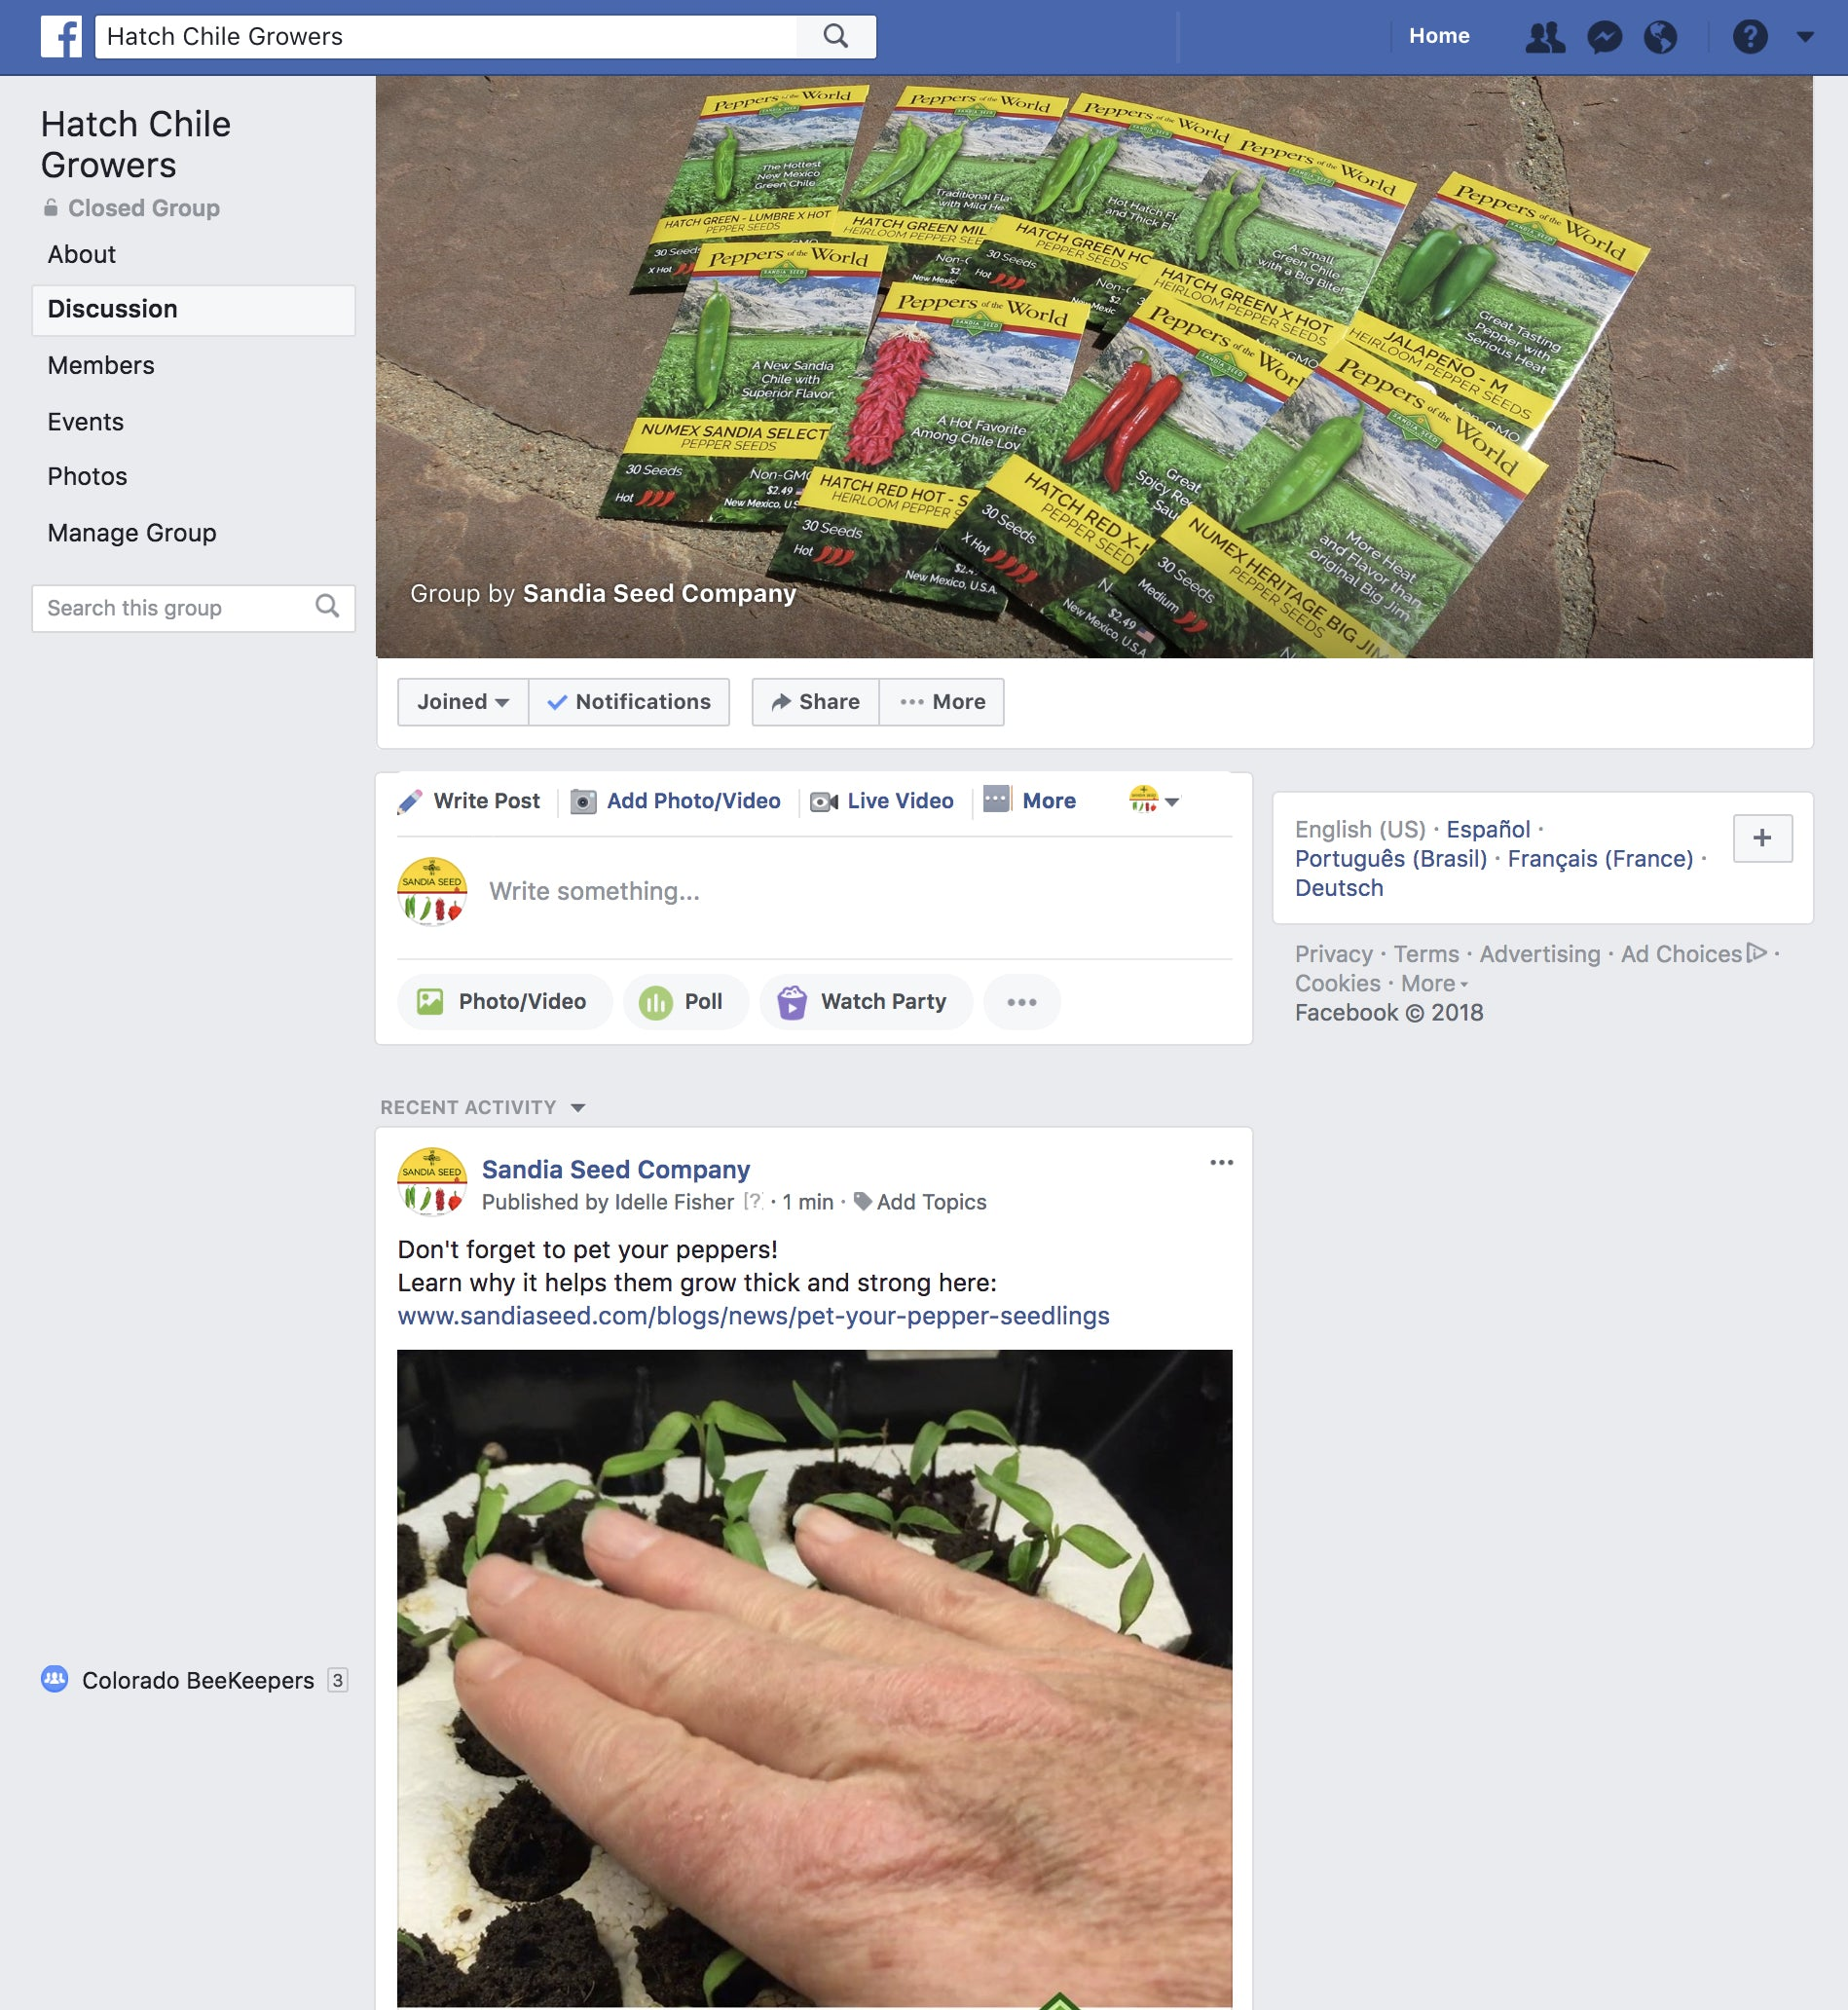 Hatch Chile Growers Group on Facebook